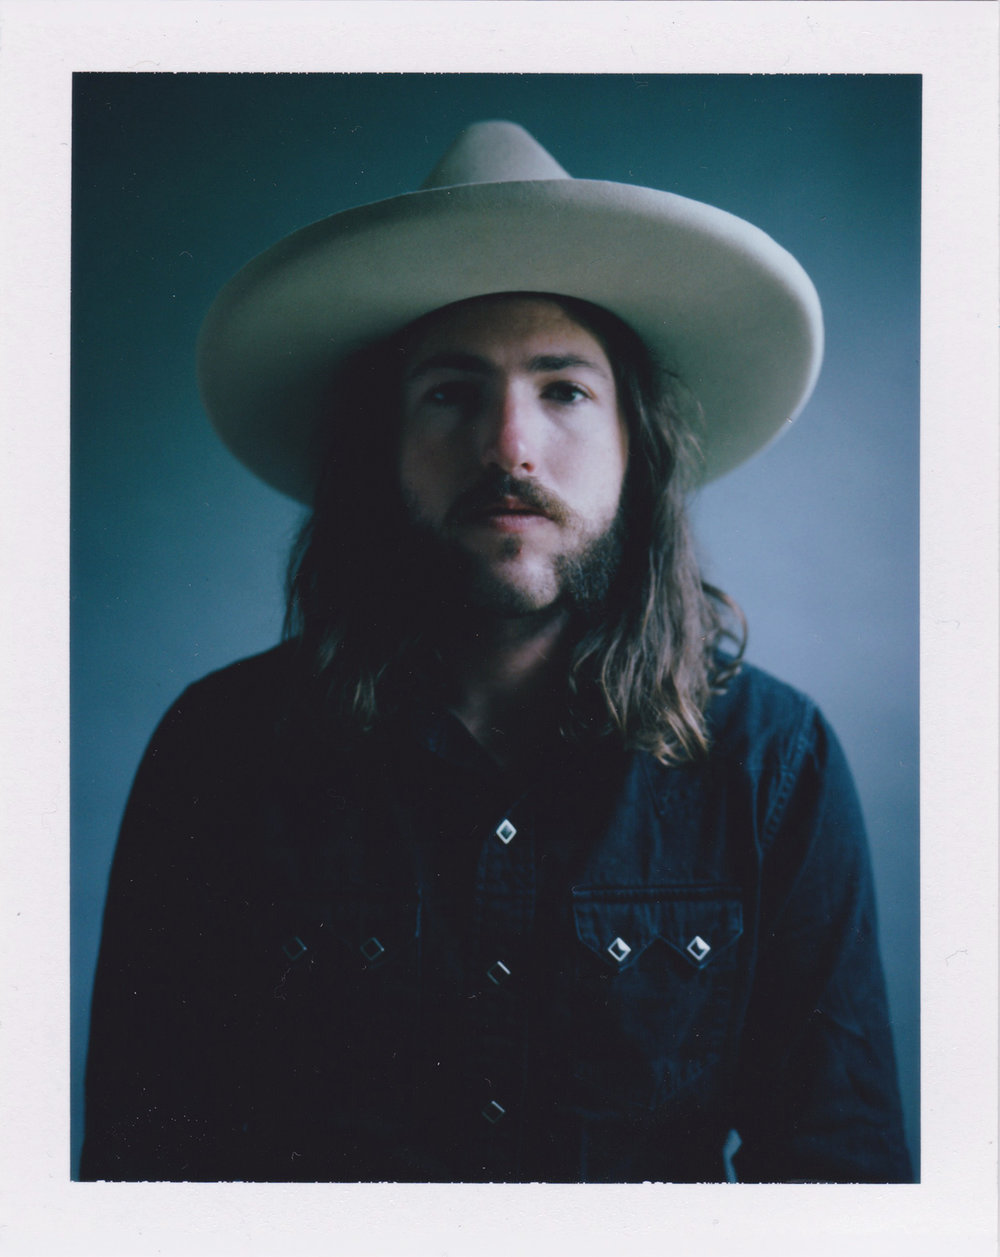 "Danielle Atkins  • Nashville, TN  @daniellebatkins   I shot this image for some recent personal portrait work. It has been short on Fuji fp100c polaroid. The portrait is of my good friend Jordan ""Solly"" Levine. He is a drummer for a few country western music artists. He always has such great style and puts a lot of care into his look. I thought it suited the western prompt well."